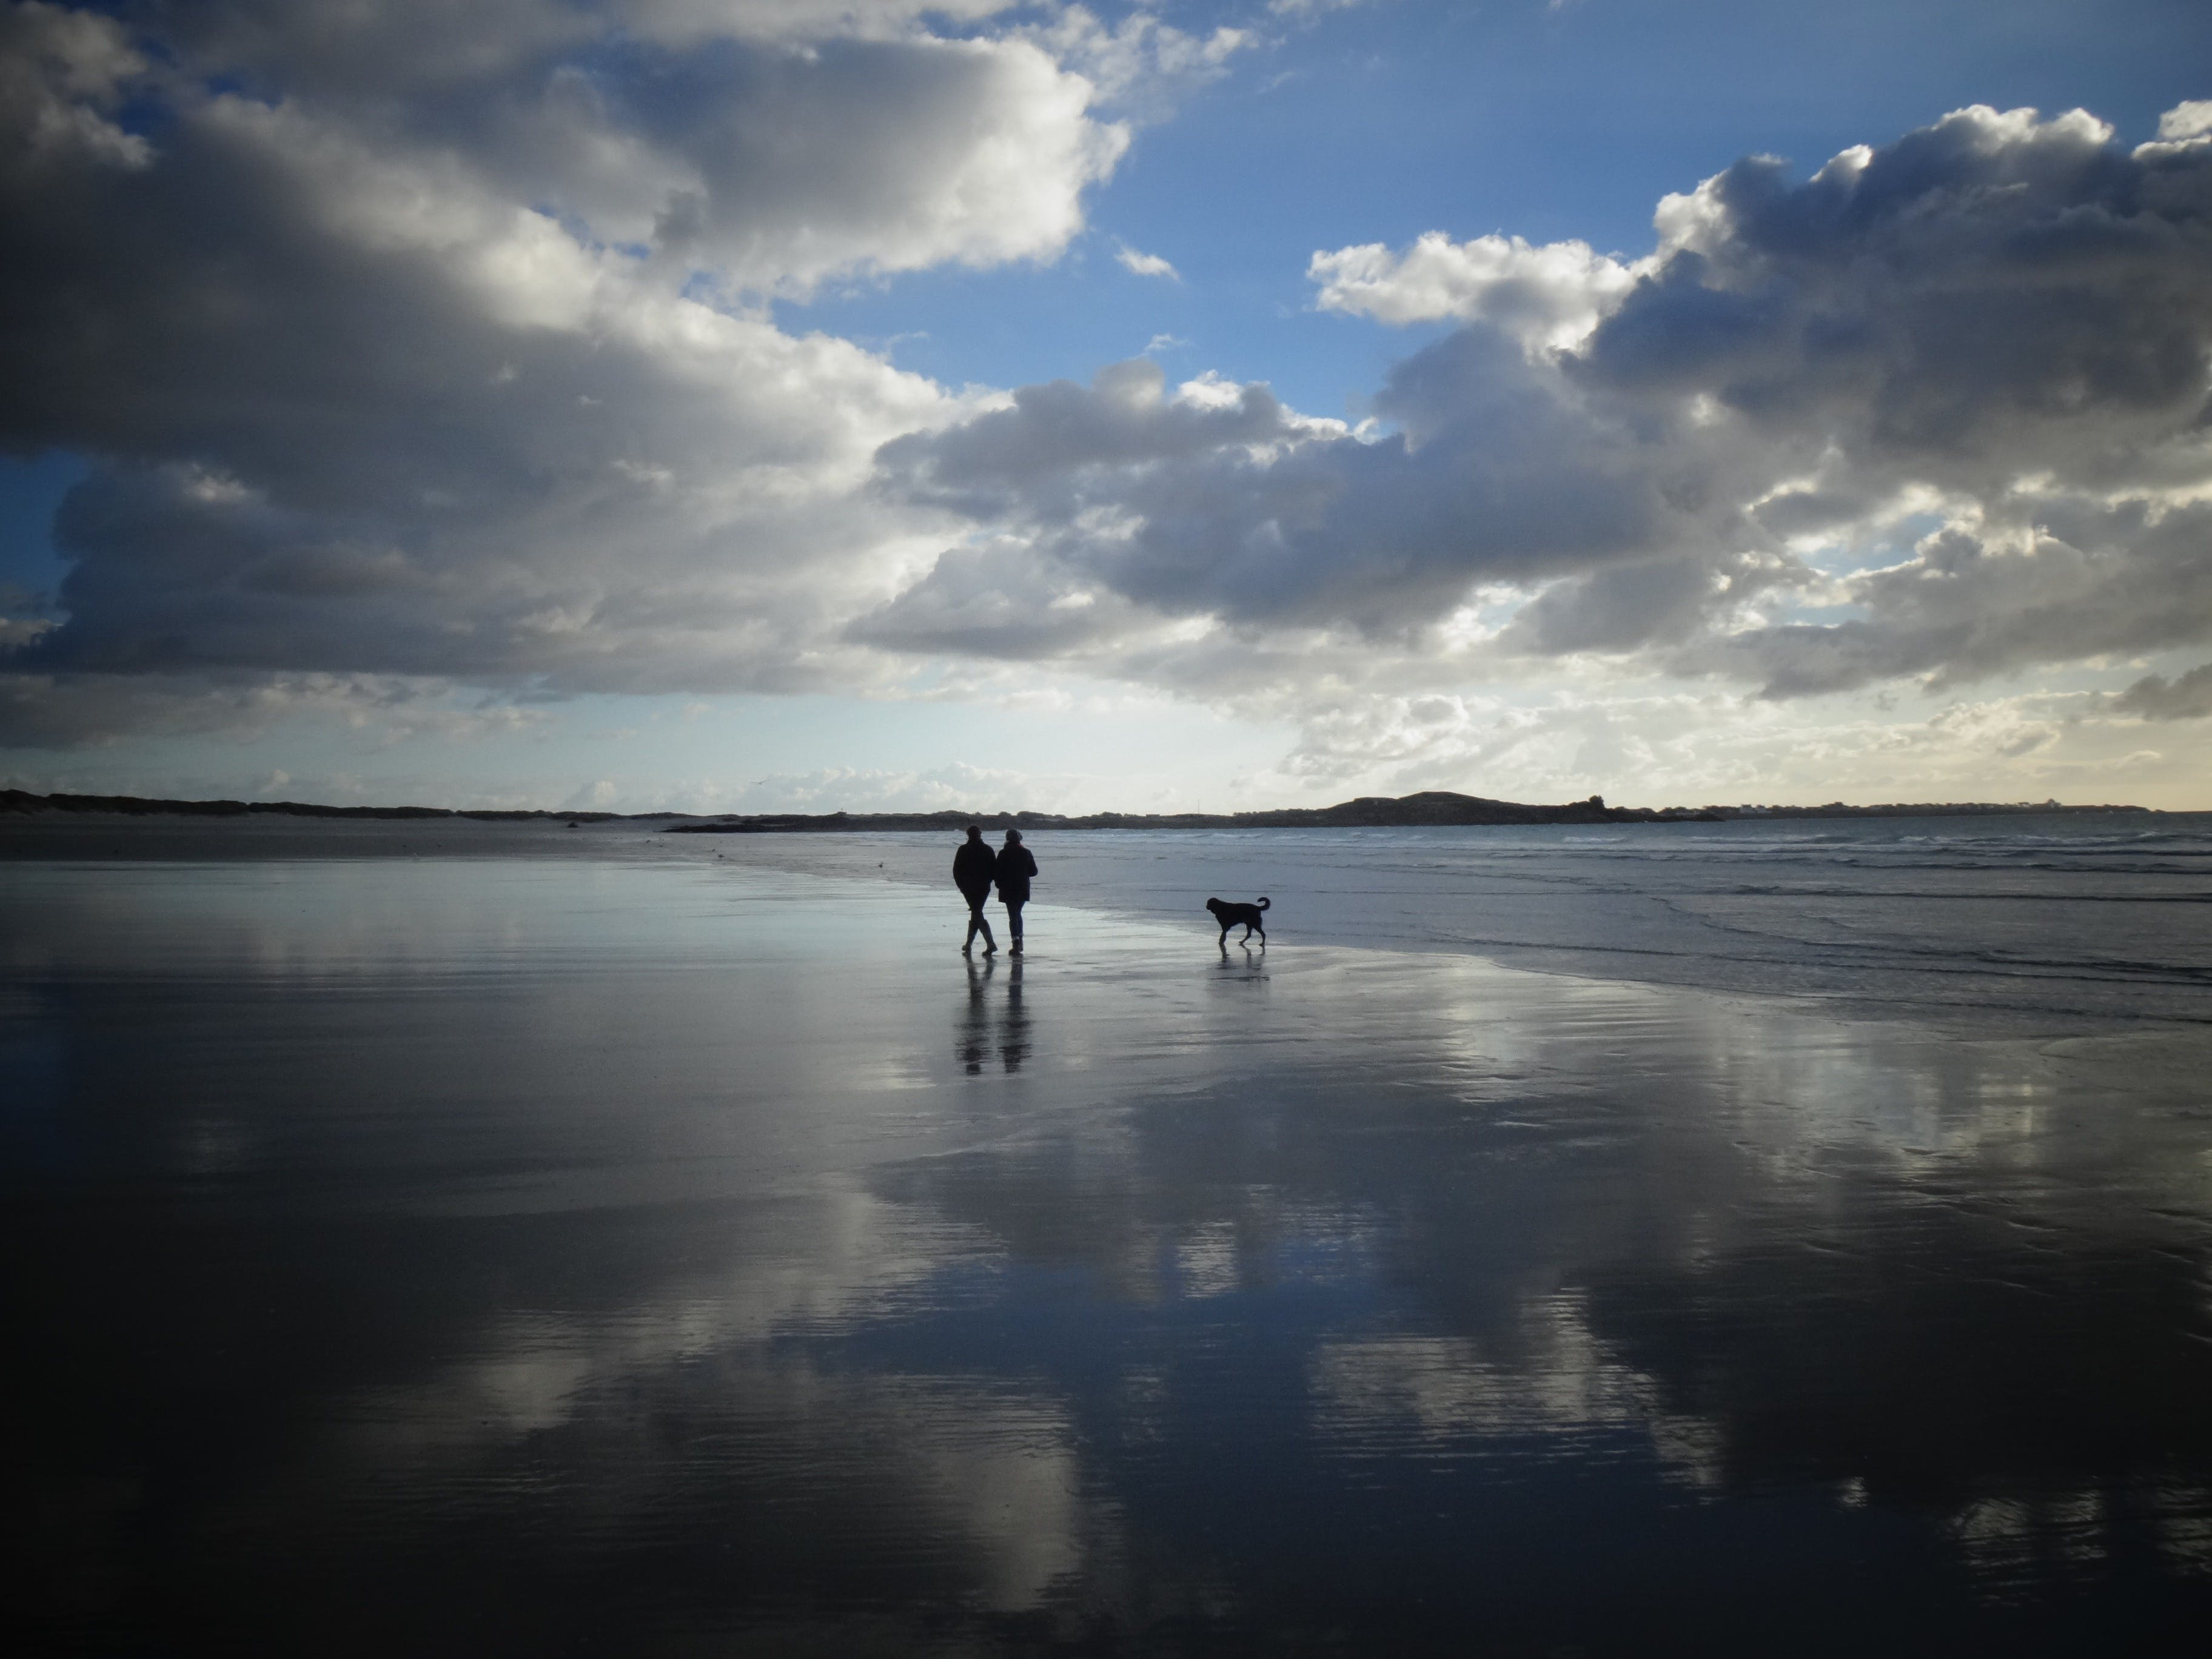 Two Person Walking on Seashore